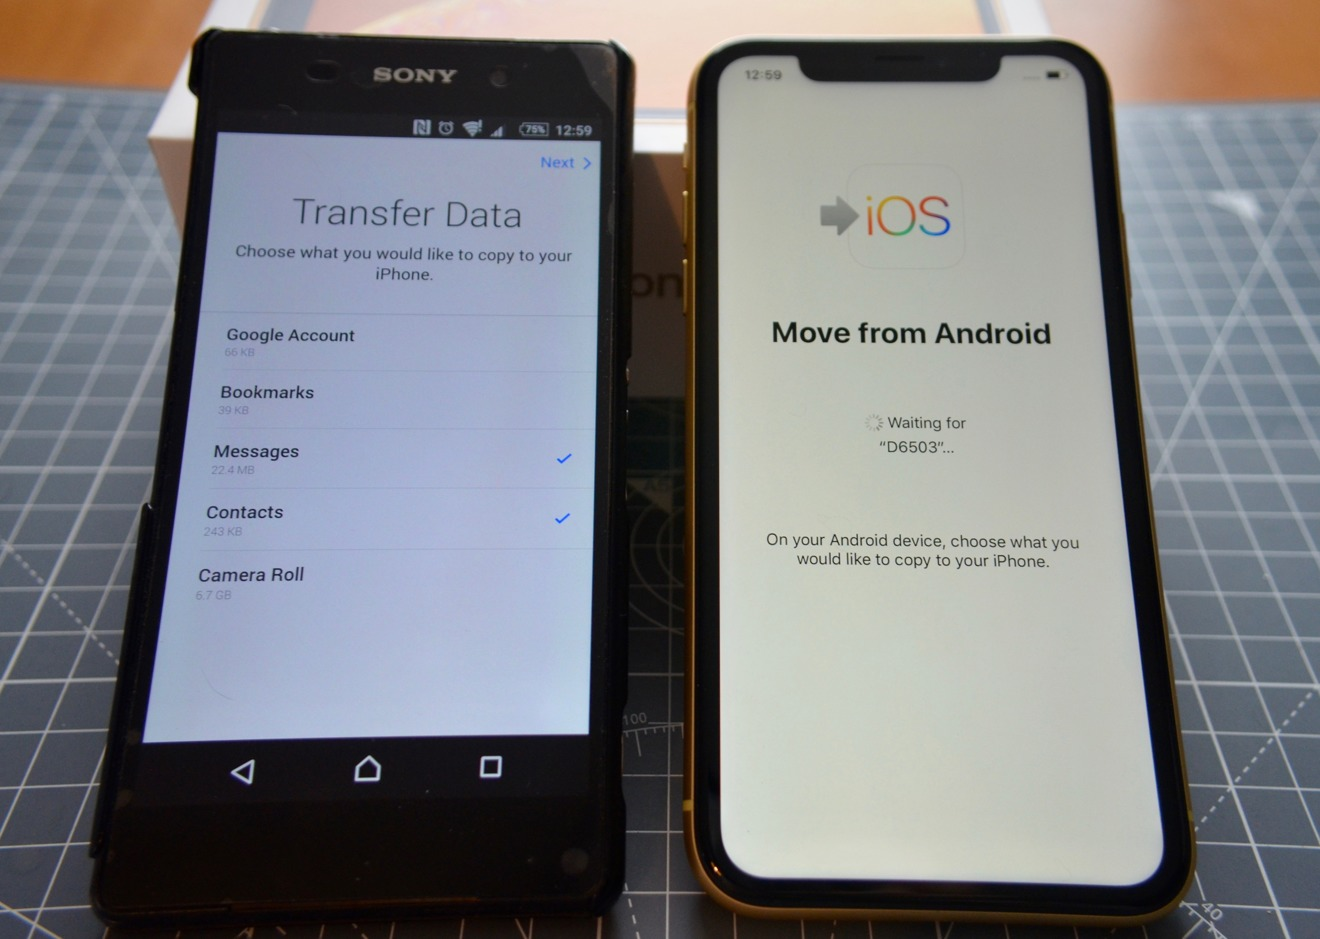 Selecting items on the Android smartphone to transfer across to the iPhone